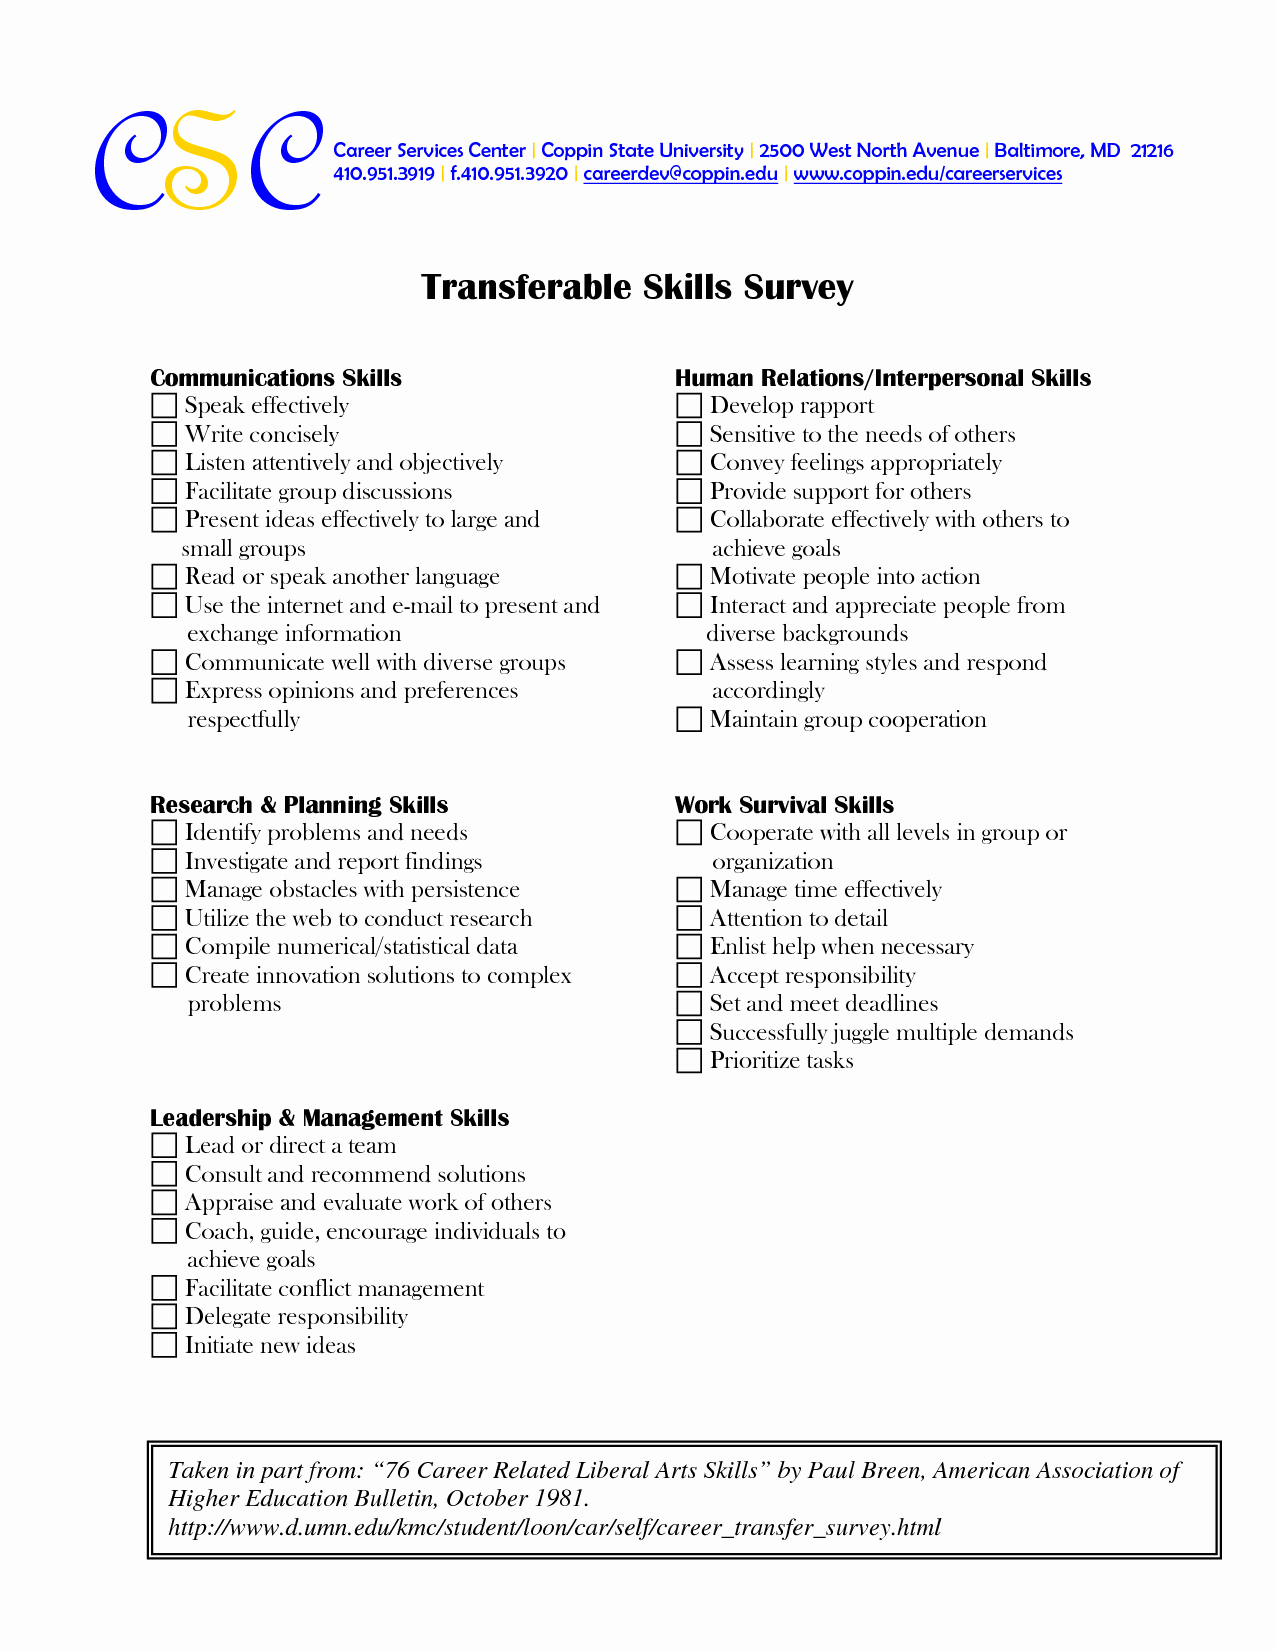 Job Skills Worksheets New 17 Best Of Career Skills Worksheets Job Skills